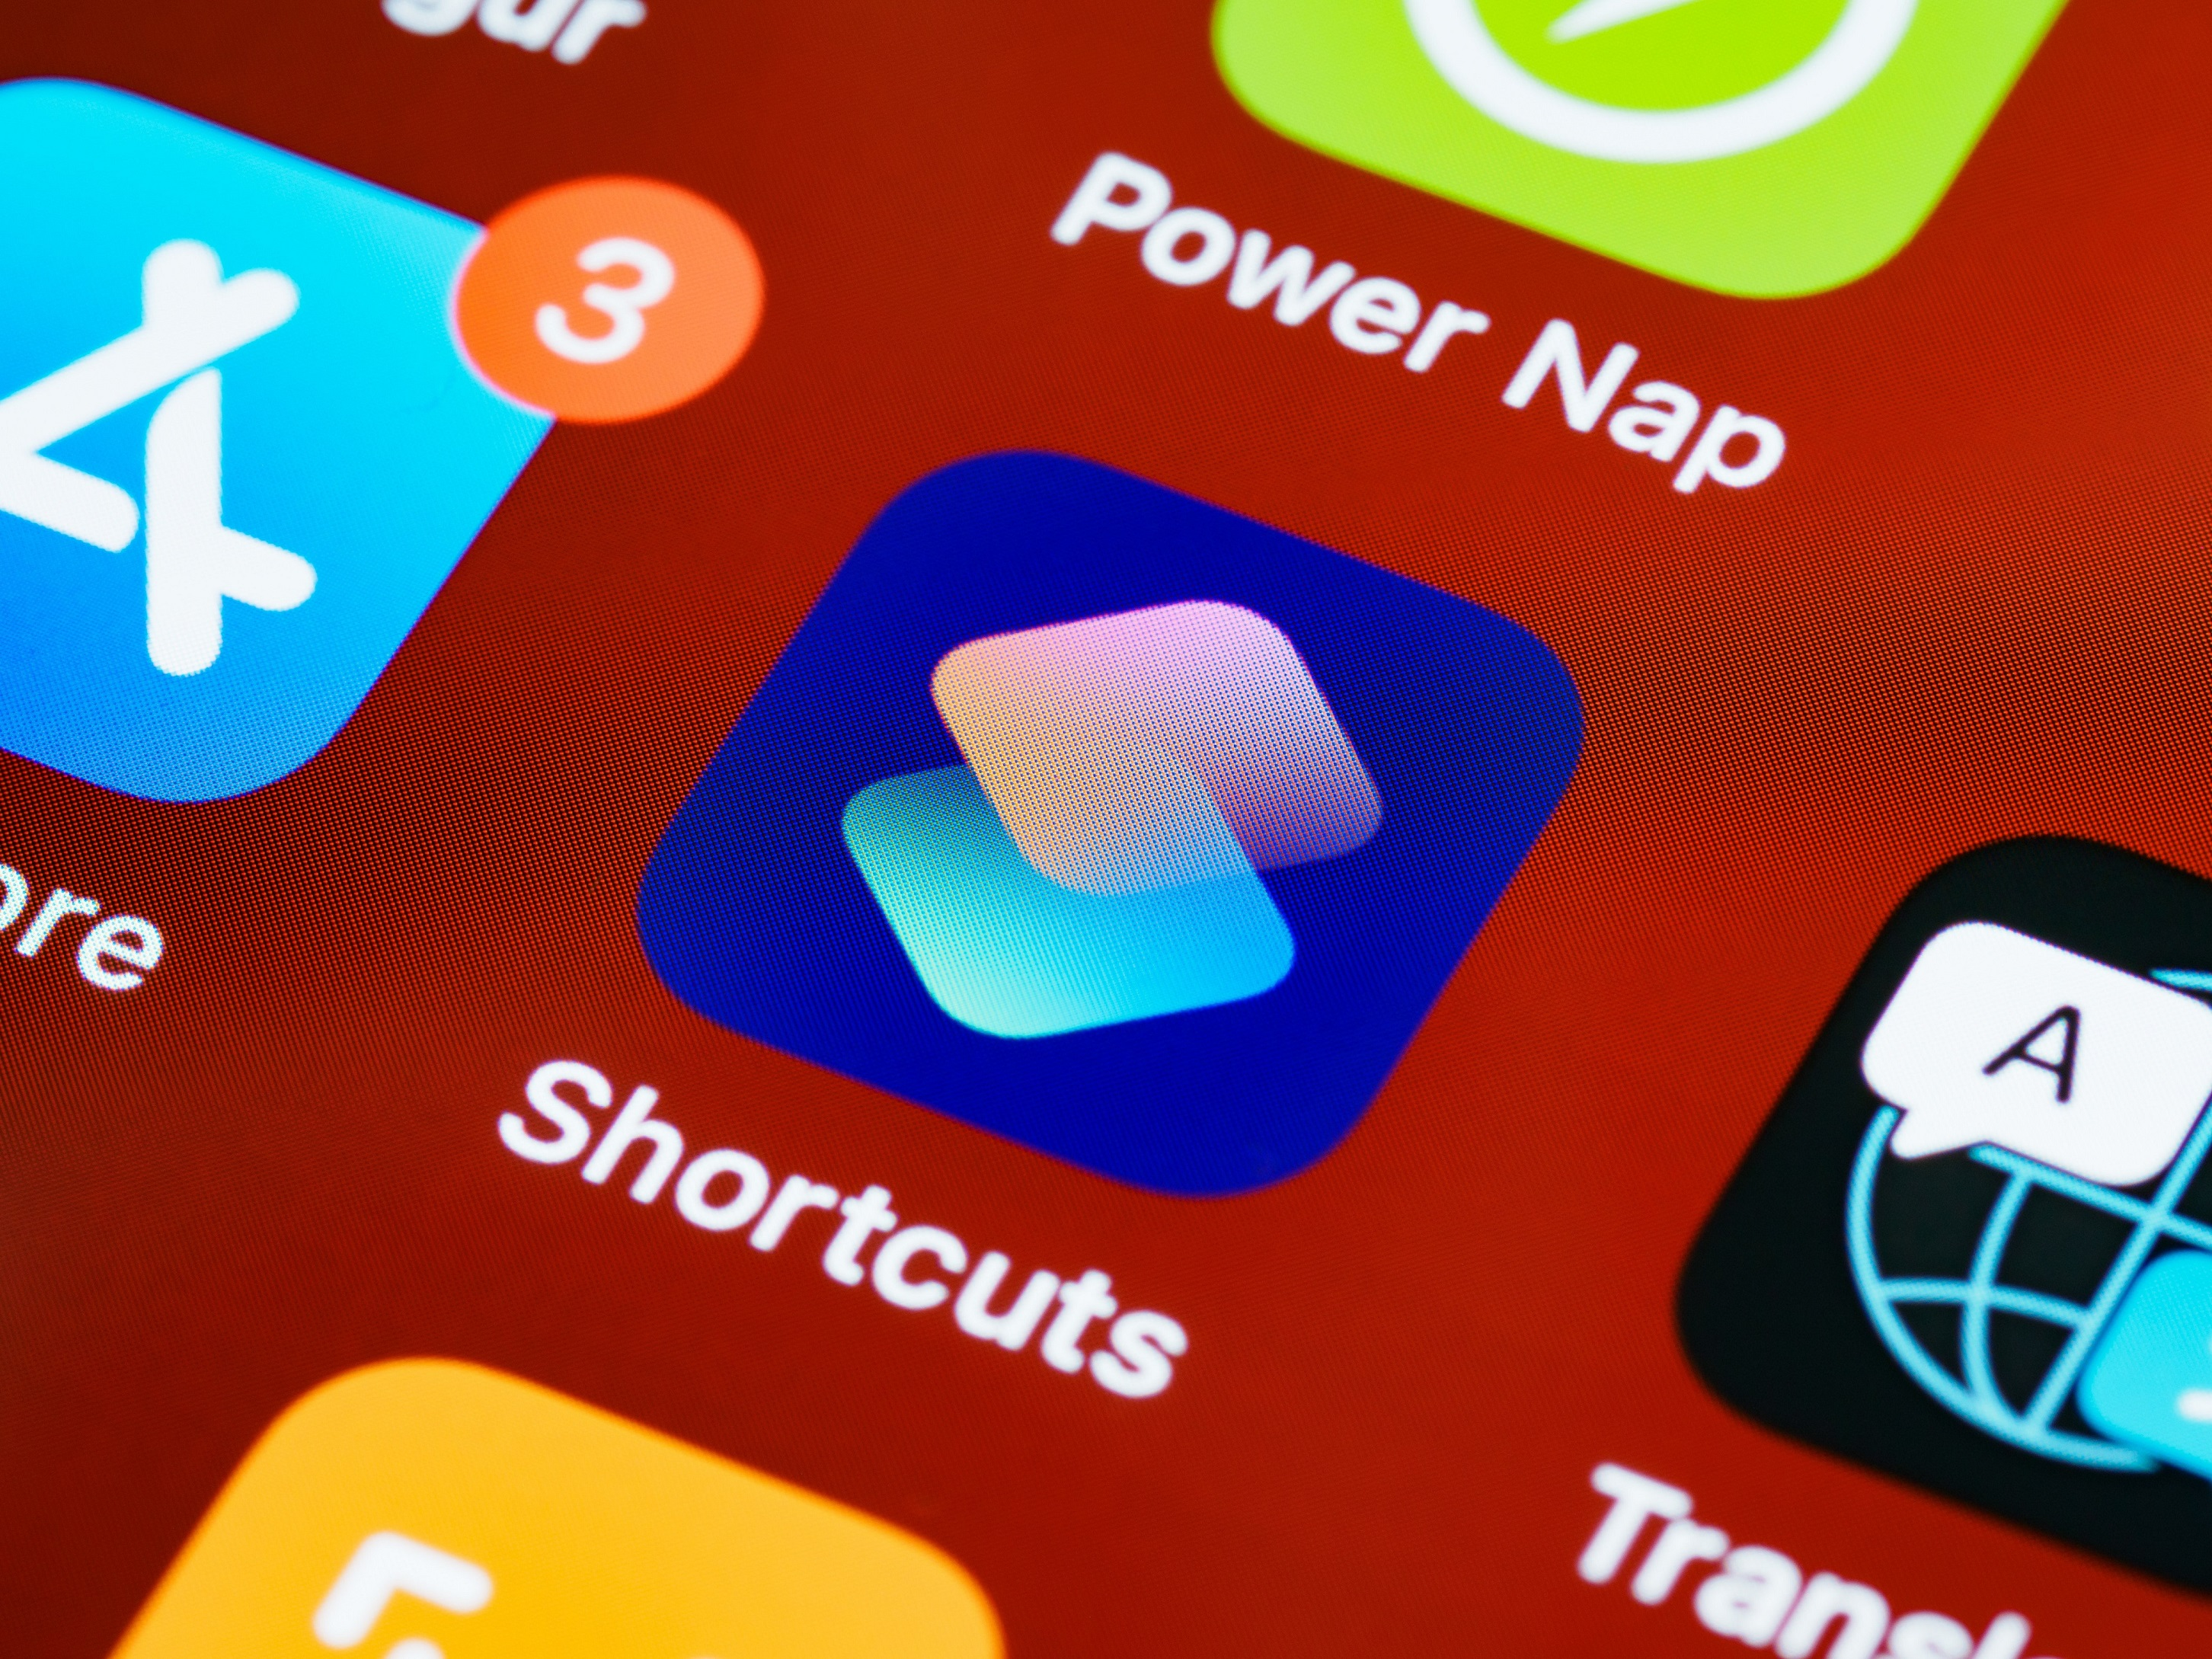 iOS Apple iPhone Shortcuts application battery charging battery phone smartphone low accumulator cellphone akkumulátor